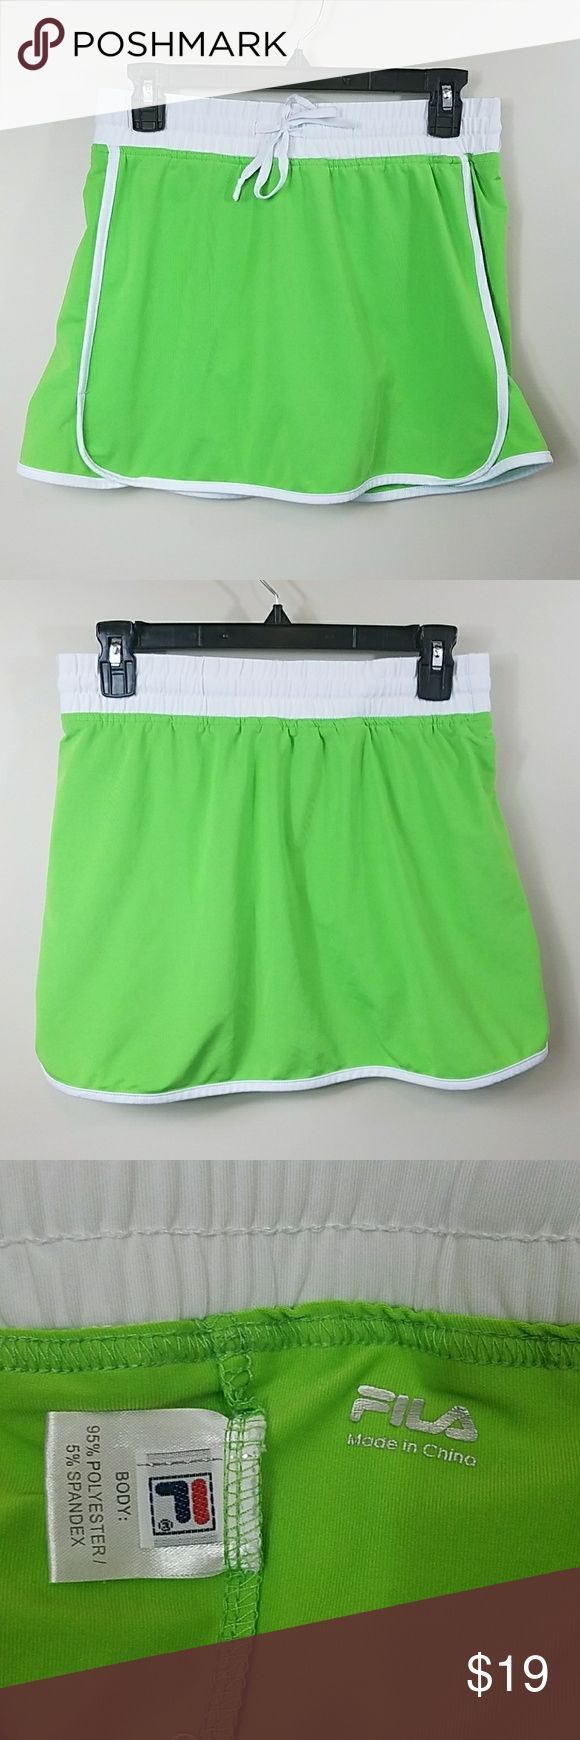 "Fila Neon Green & White Skort Fila Neon Green & White Skort.   Size small.  Drawstring waist, white piping detail, matching green shorts underneath.  13.5"" across the waist.  13"" long. 95% polyester,  5% spandex. Fila Shorts Skorts"